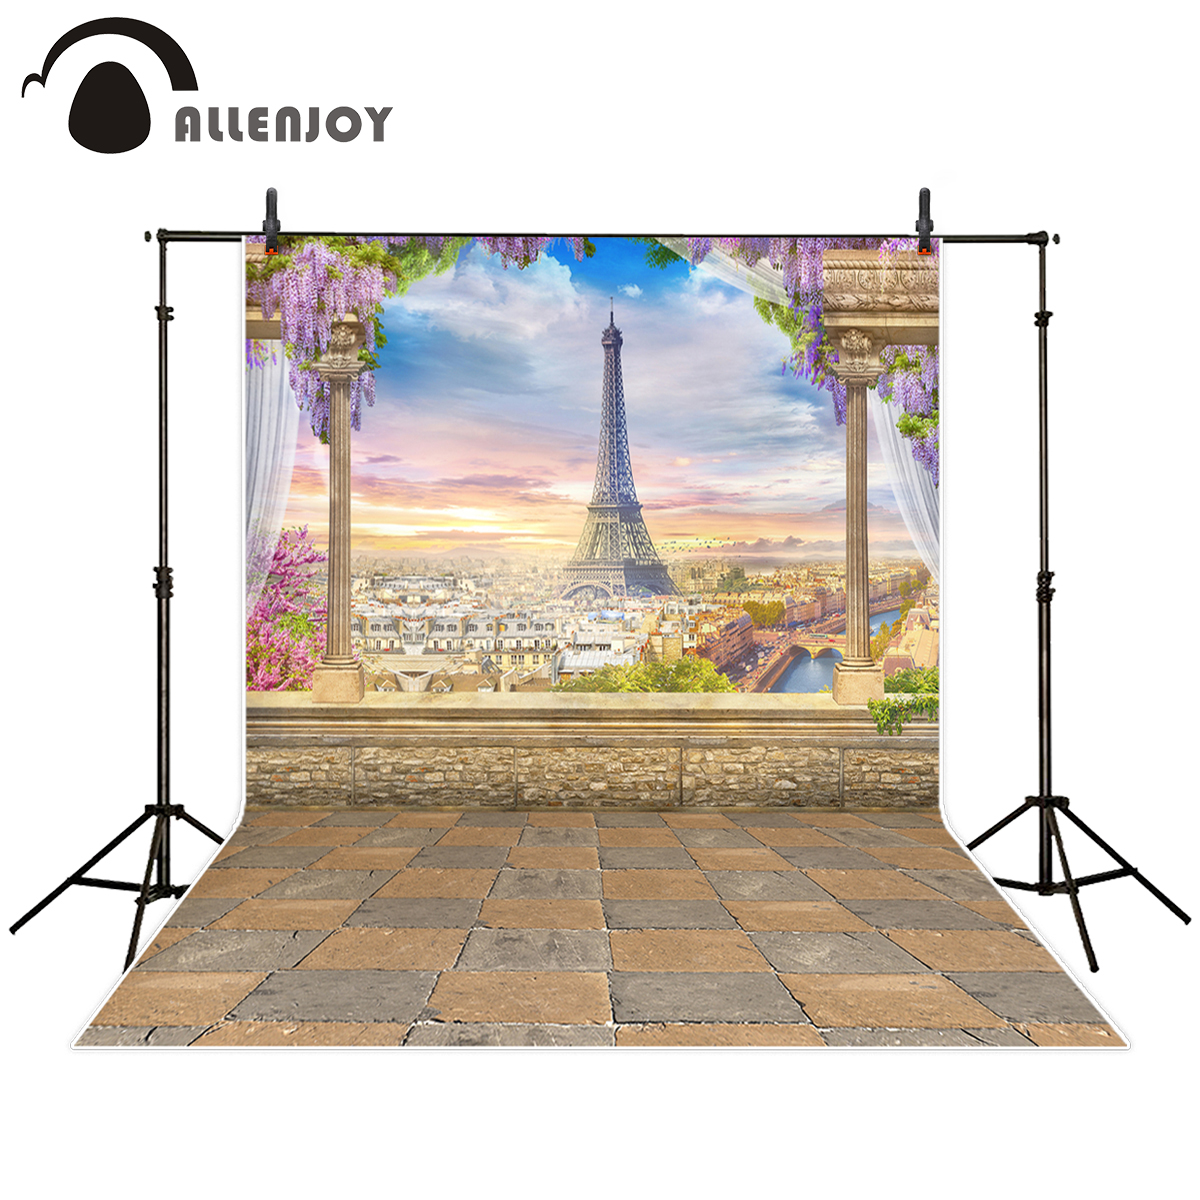 Allenjoy professional photography background beautiful Romantic paris Eiffel Tower Valentine's day backdrop photocall photobooth